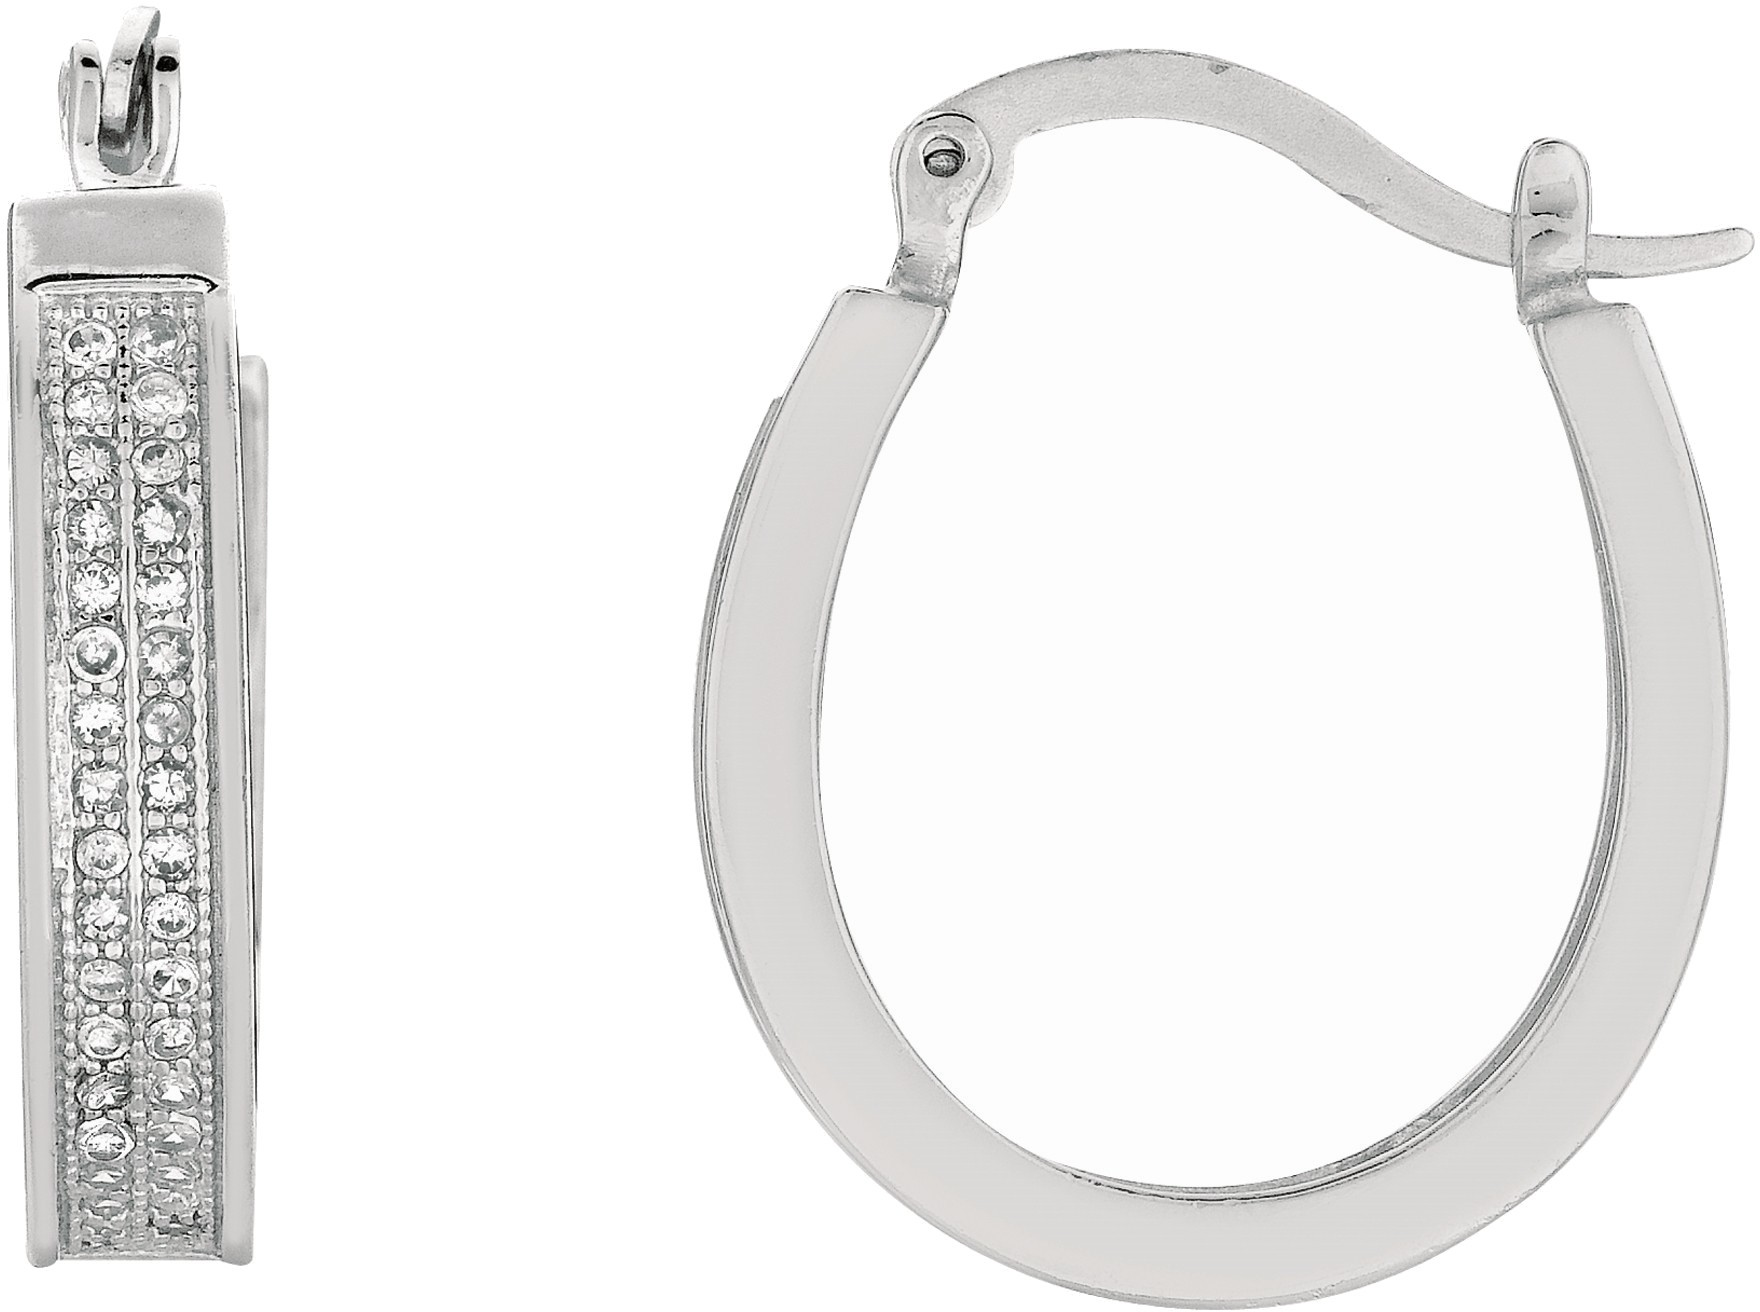 "Silver Rhodium Plated Shiny 4.0x16mm (0.16""x0.63"") Clear Cubic Zirconia (CZ) Oval Hoop Earrings"